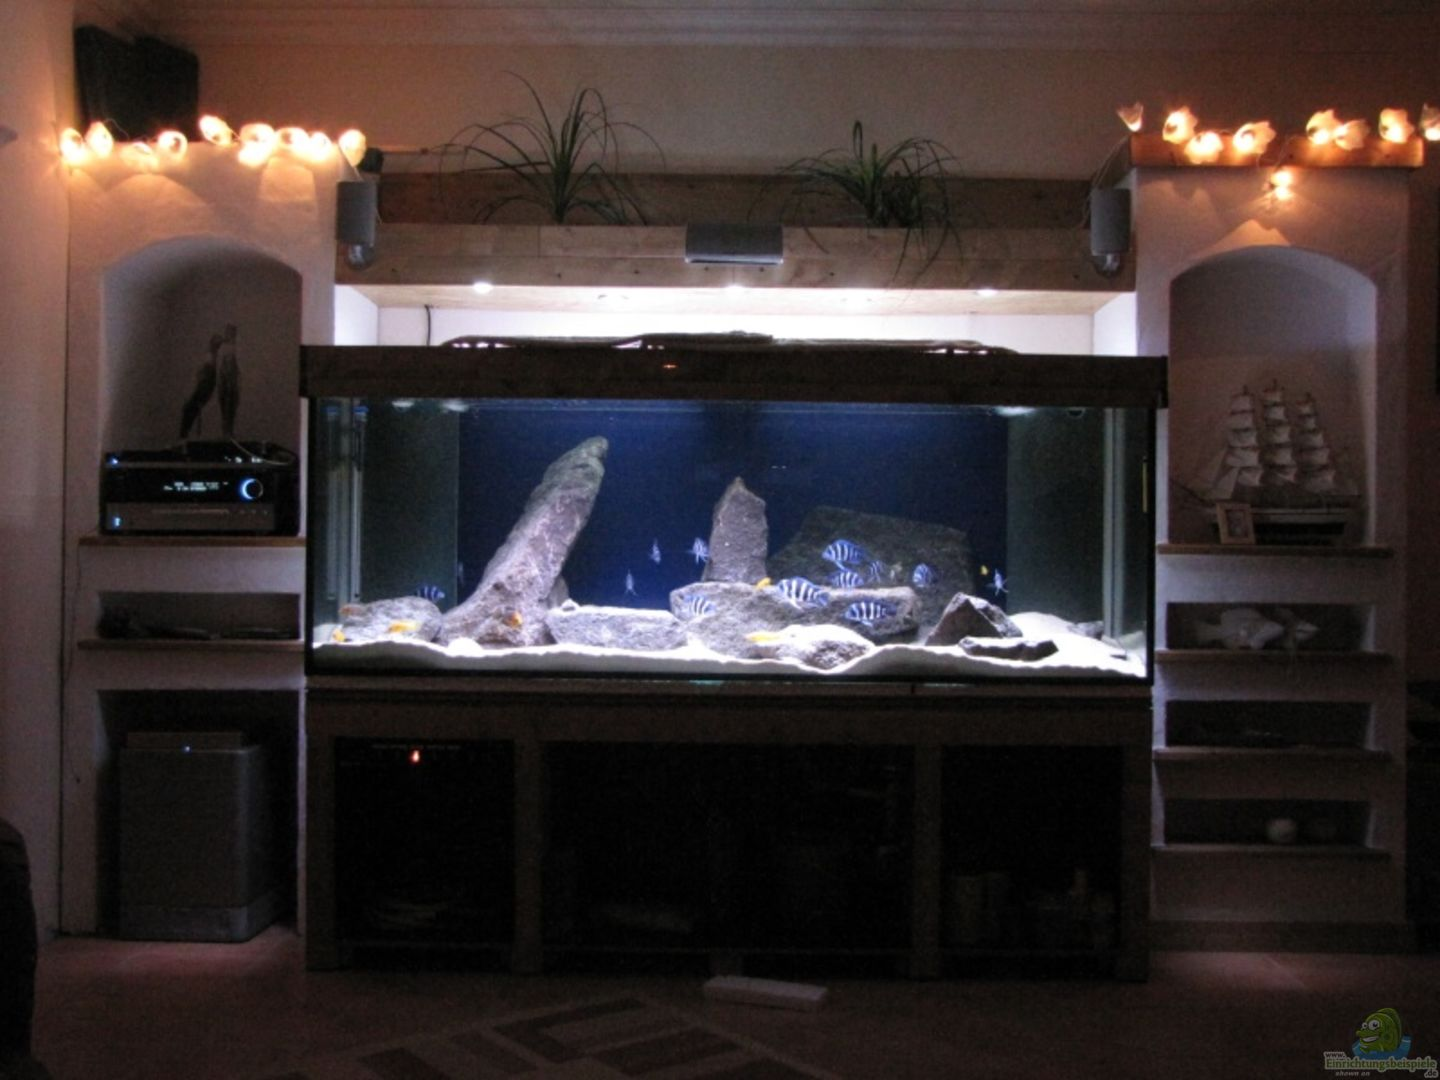 aquarium von aquamalawi 509 wohnzimmer. Black Bedroom Furniture Sets. Home Design Ideas